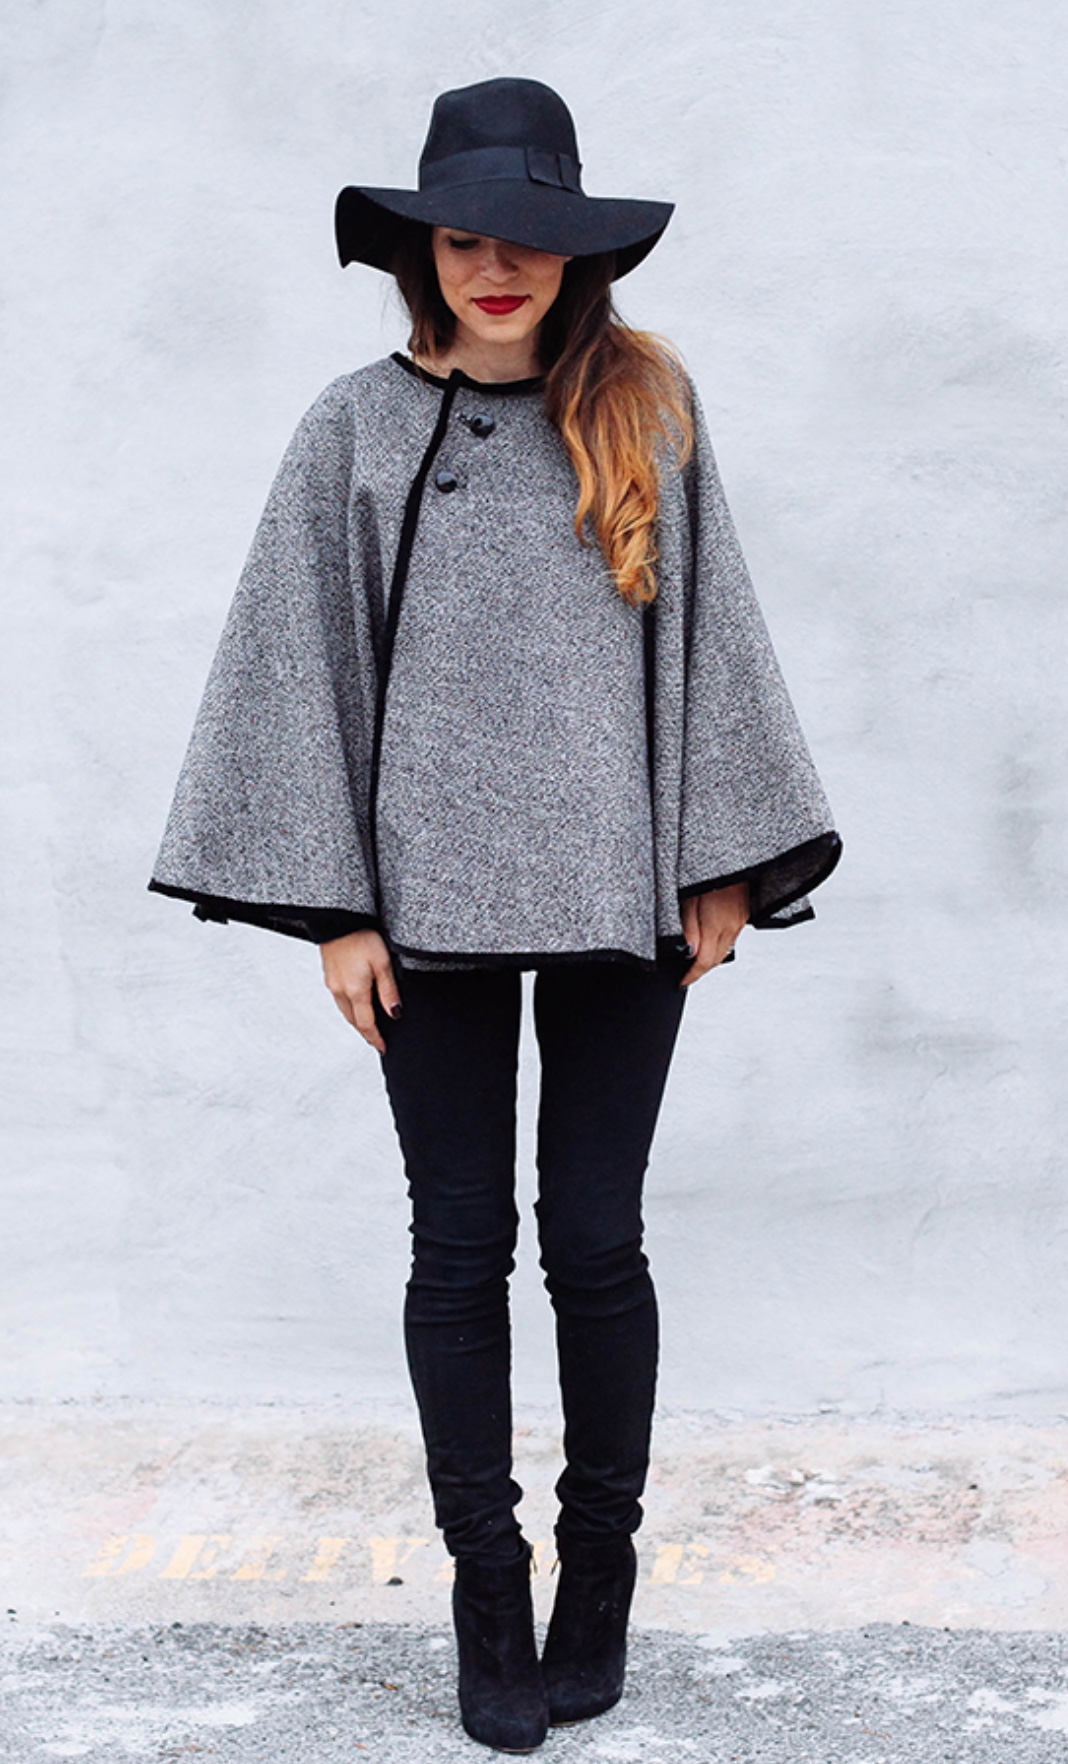 Wrap Around Cape Tutorial from In Honor of Design